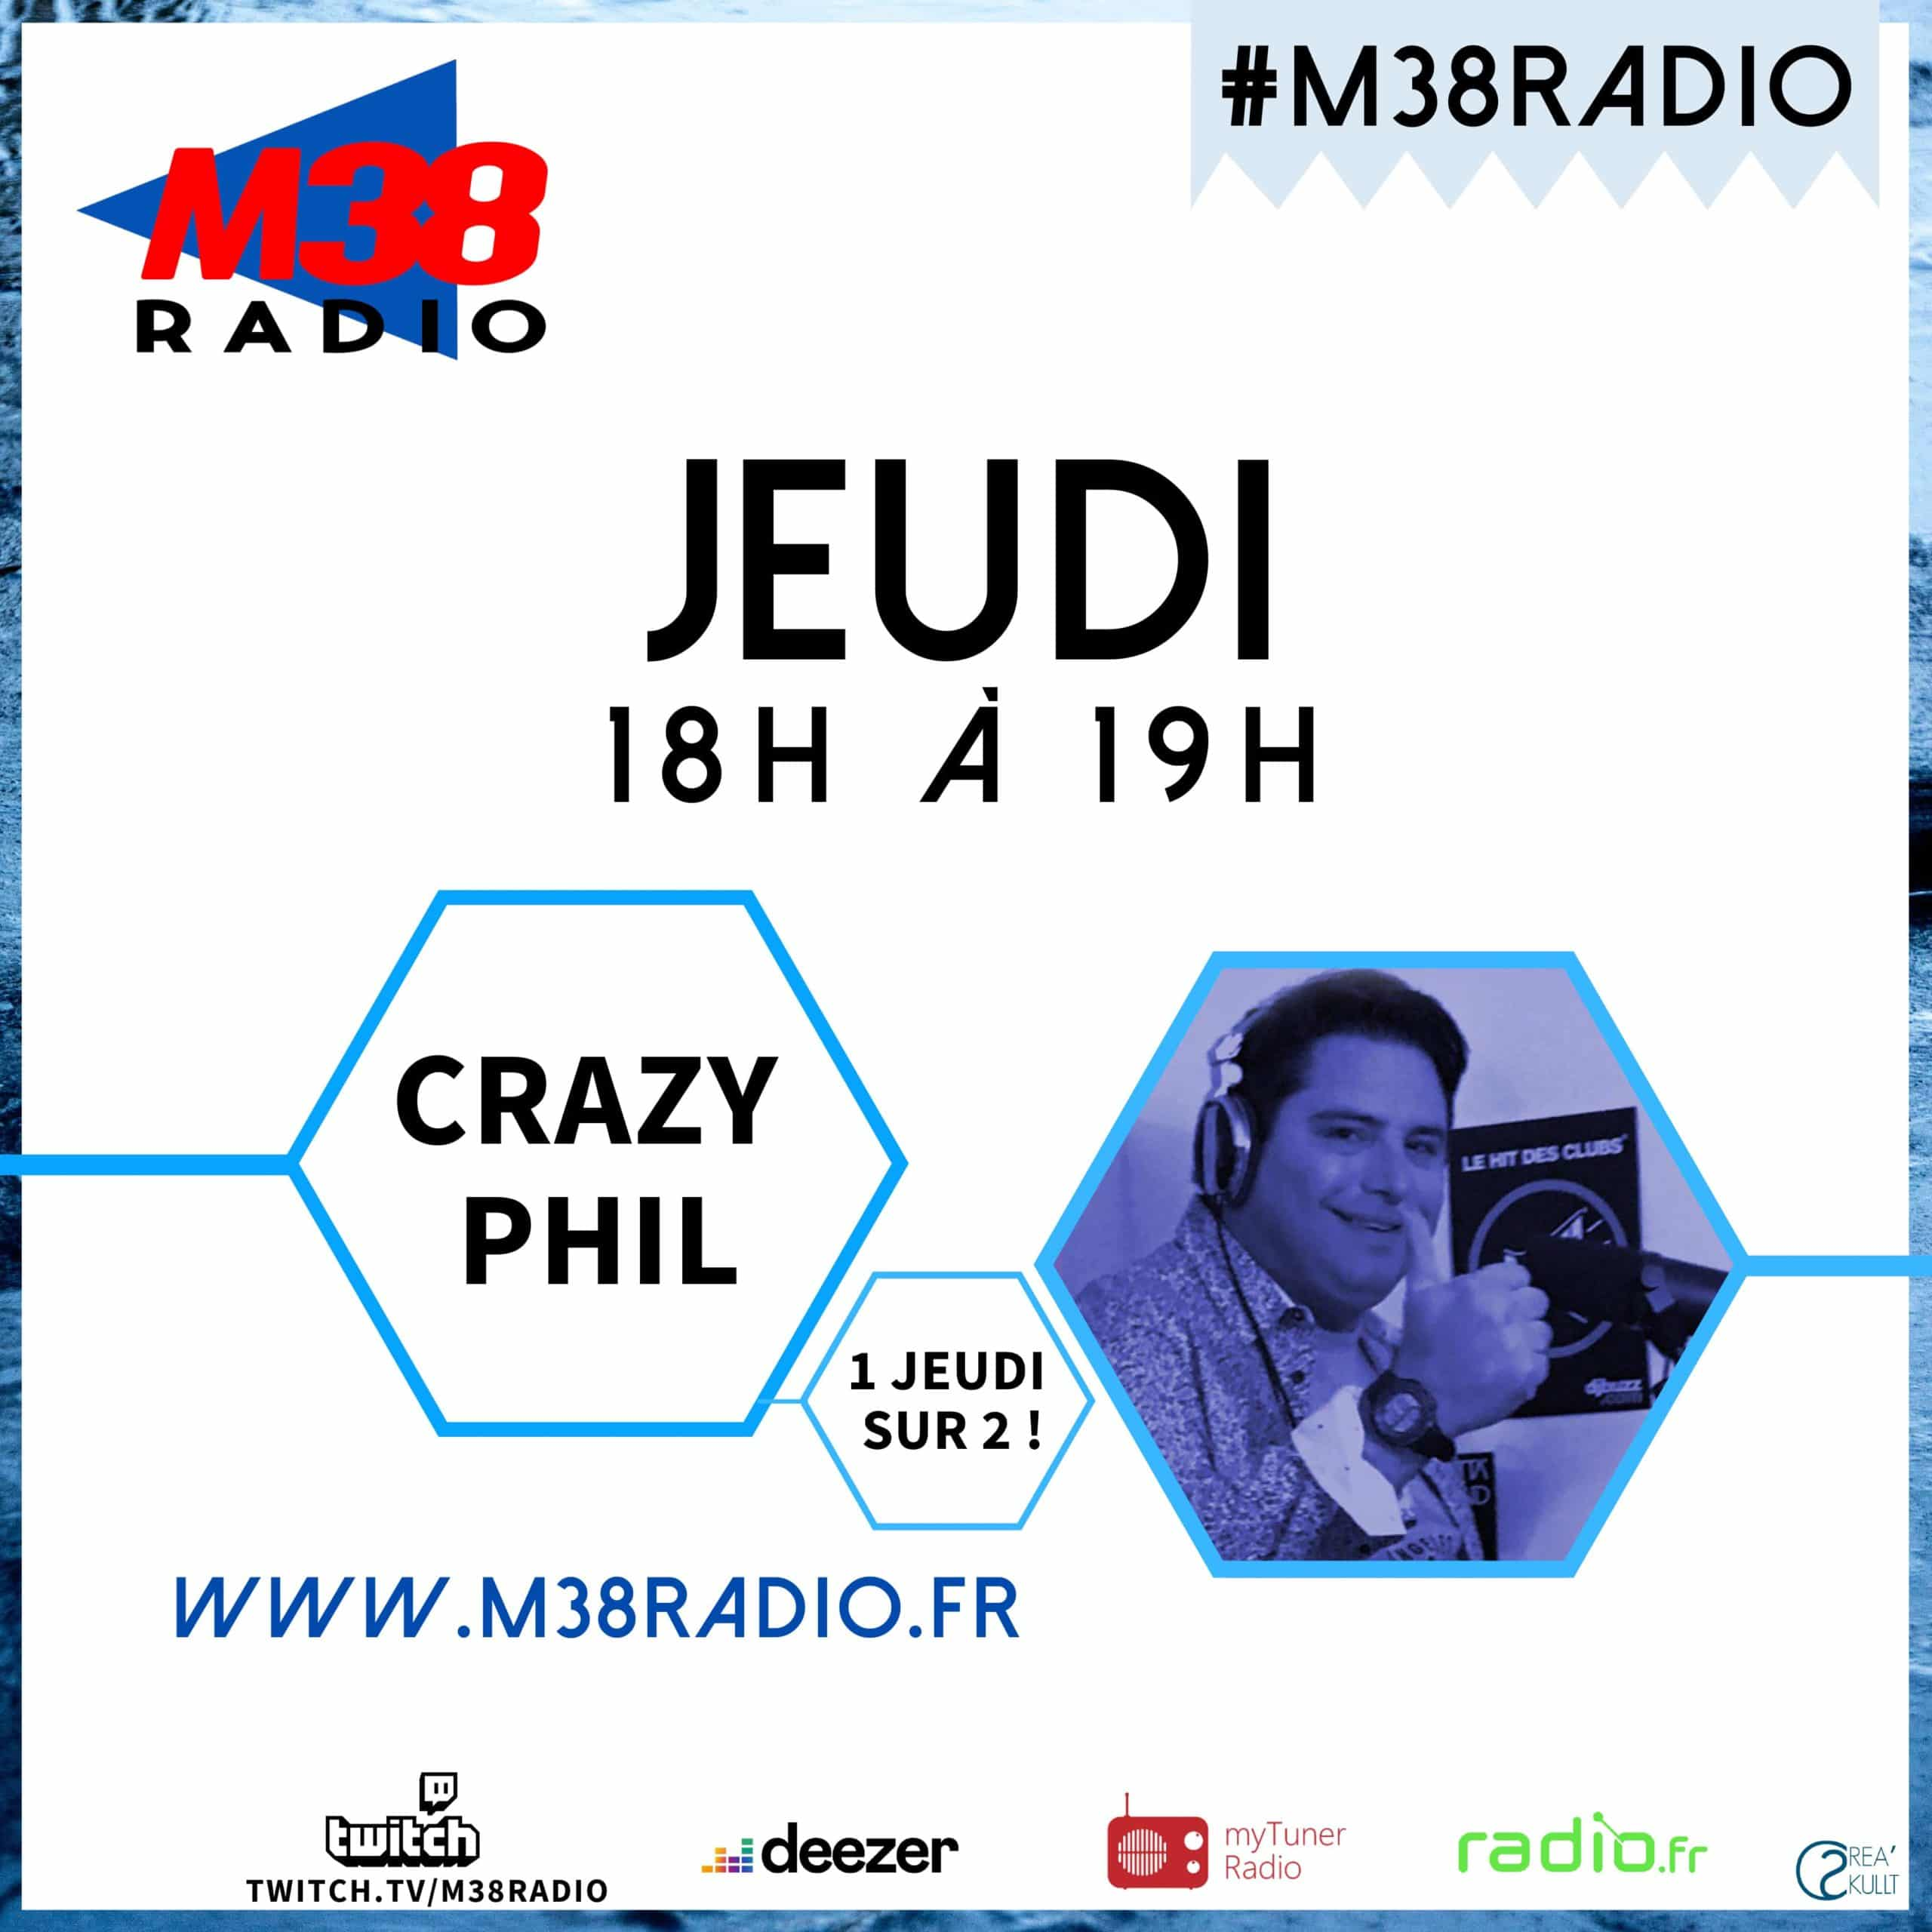 CRAZY PHIL / M38 RADIO